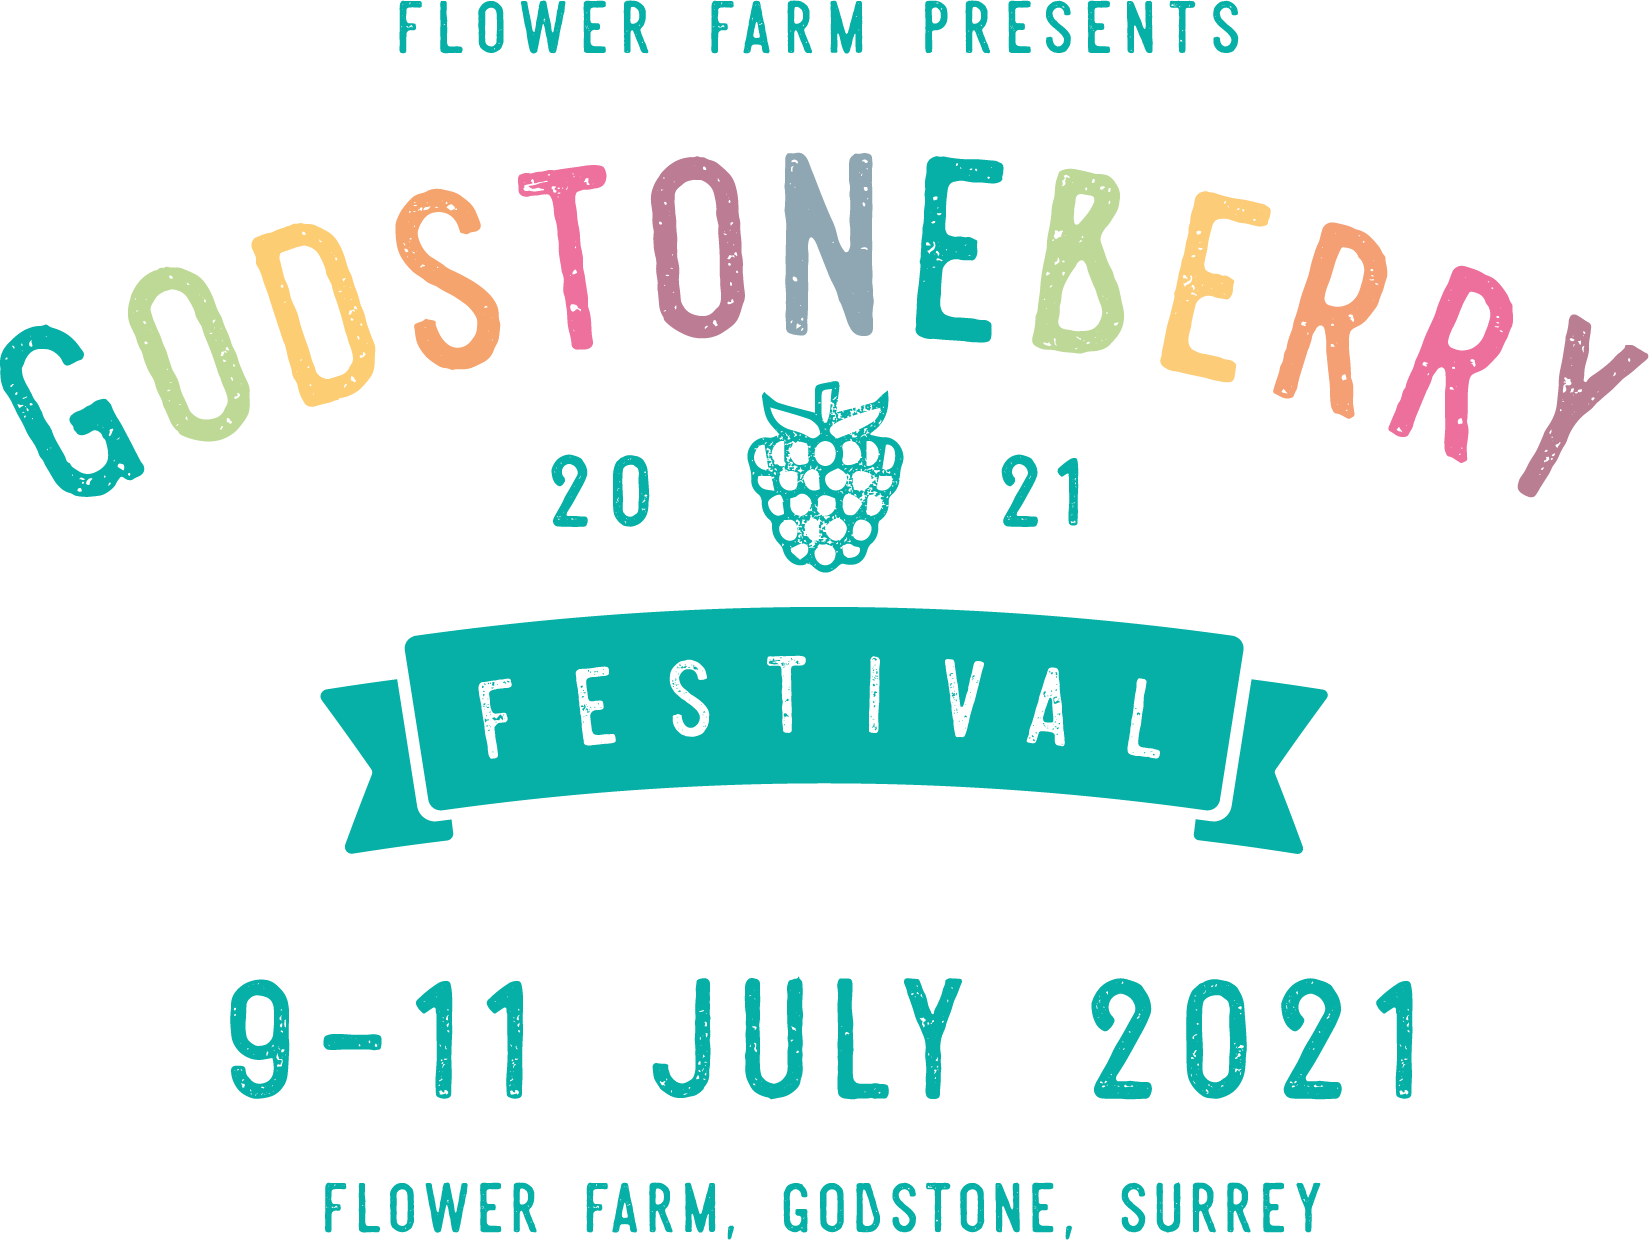 Godstoneberry Festival 2021 – Flower Farm